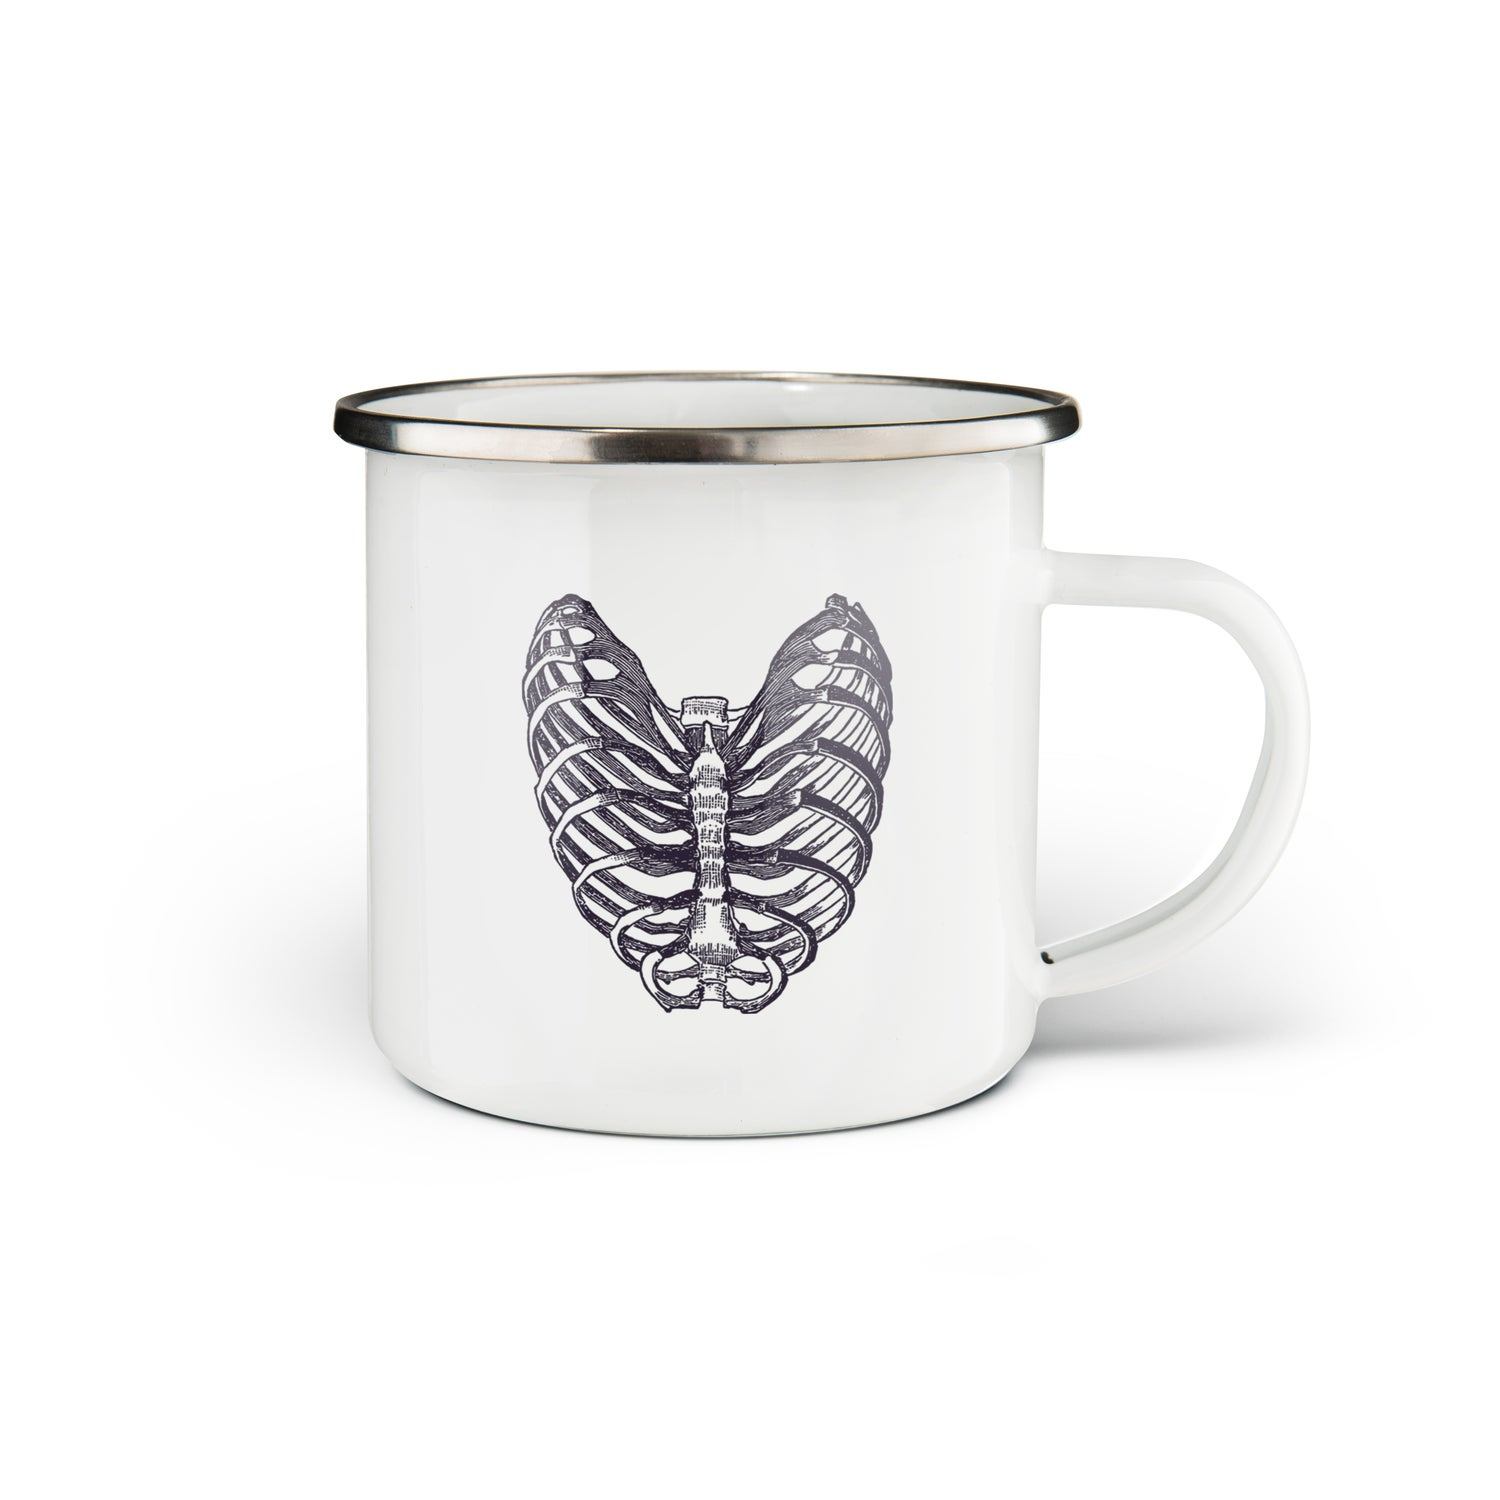 ENAMEL MUG ANATOMIC CHEST